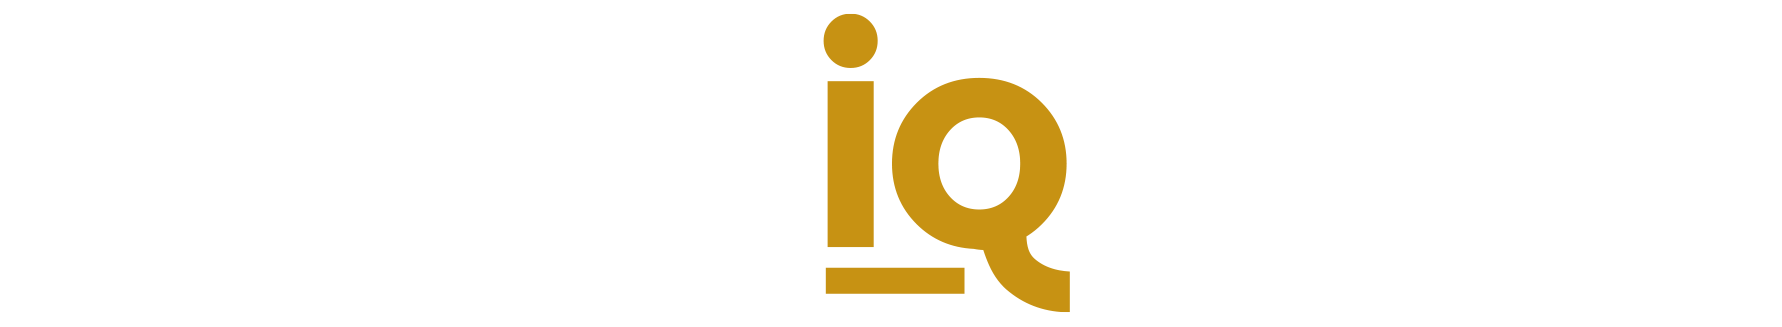 Cypher IQ Digital